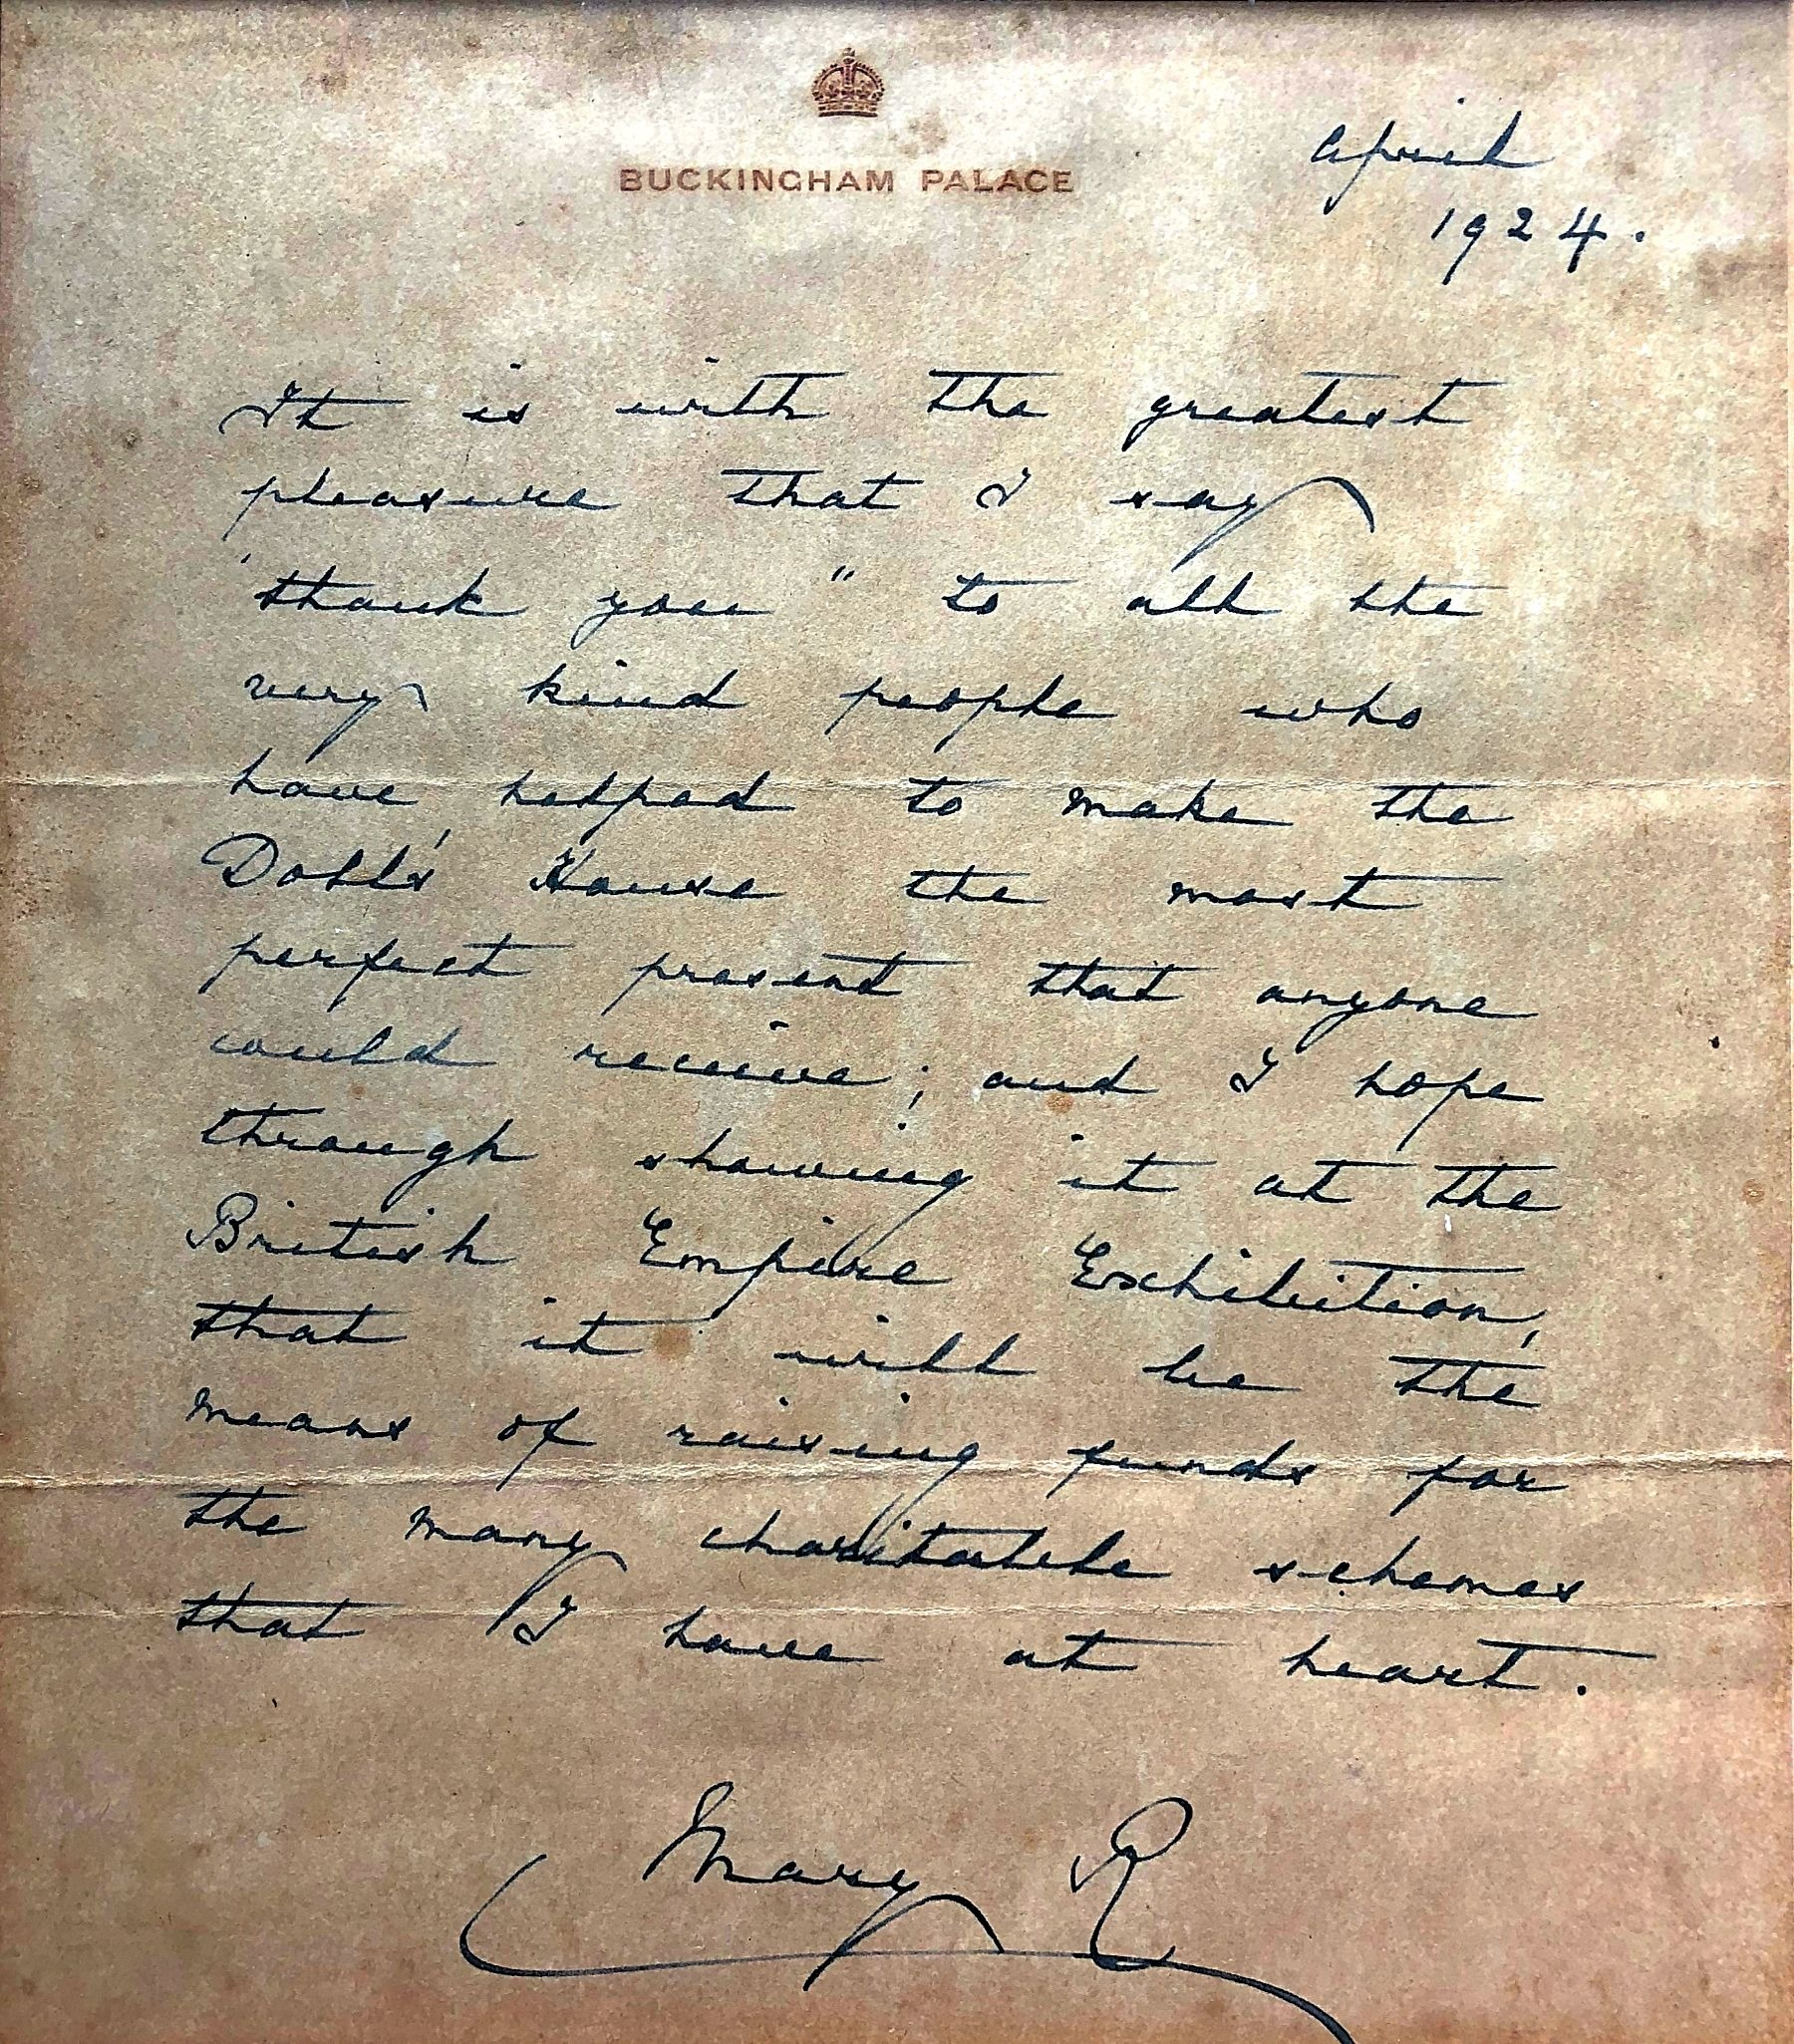 A signed letter from Queen Mary to Charles Gibson, 1924